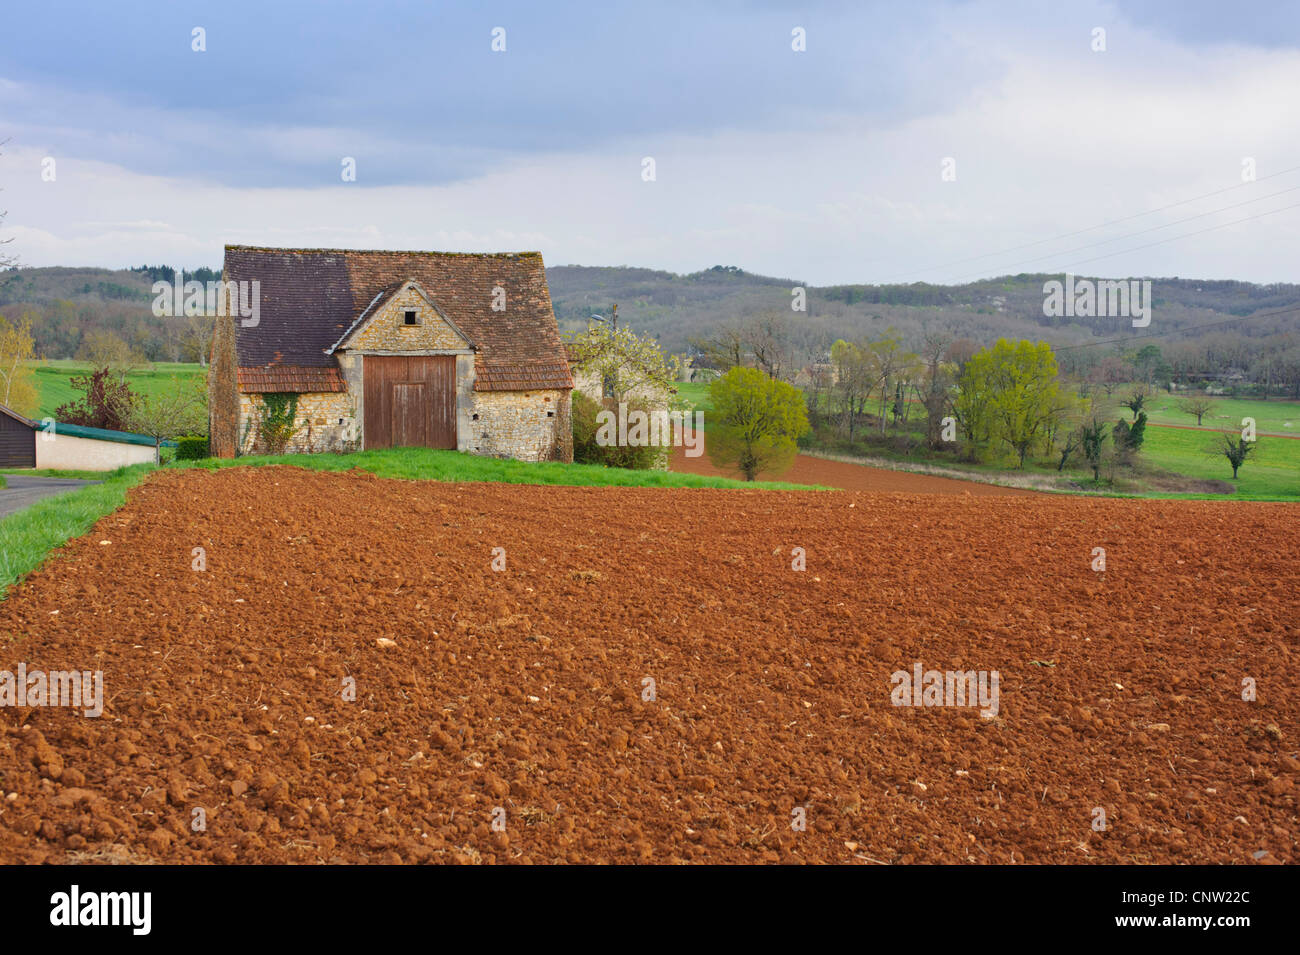 French farm barn and rich red soil in the department of Lot in southern France - Stock Image